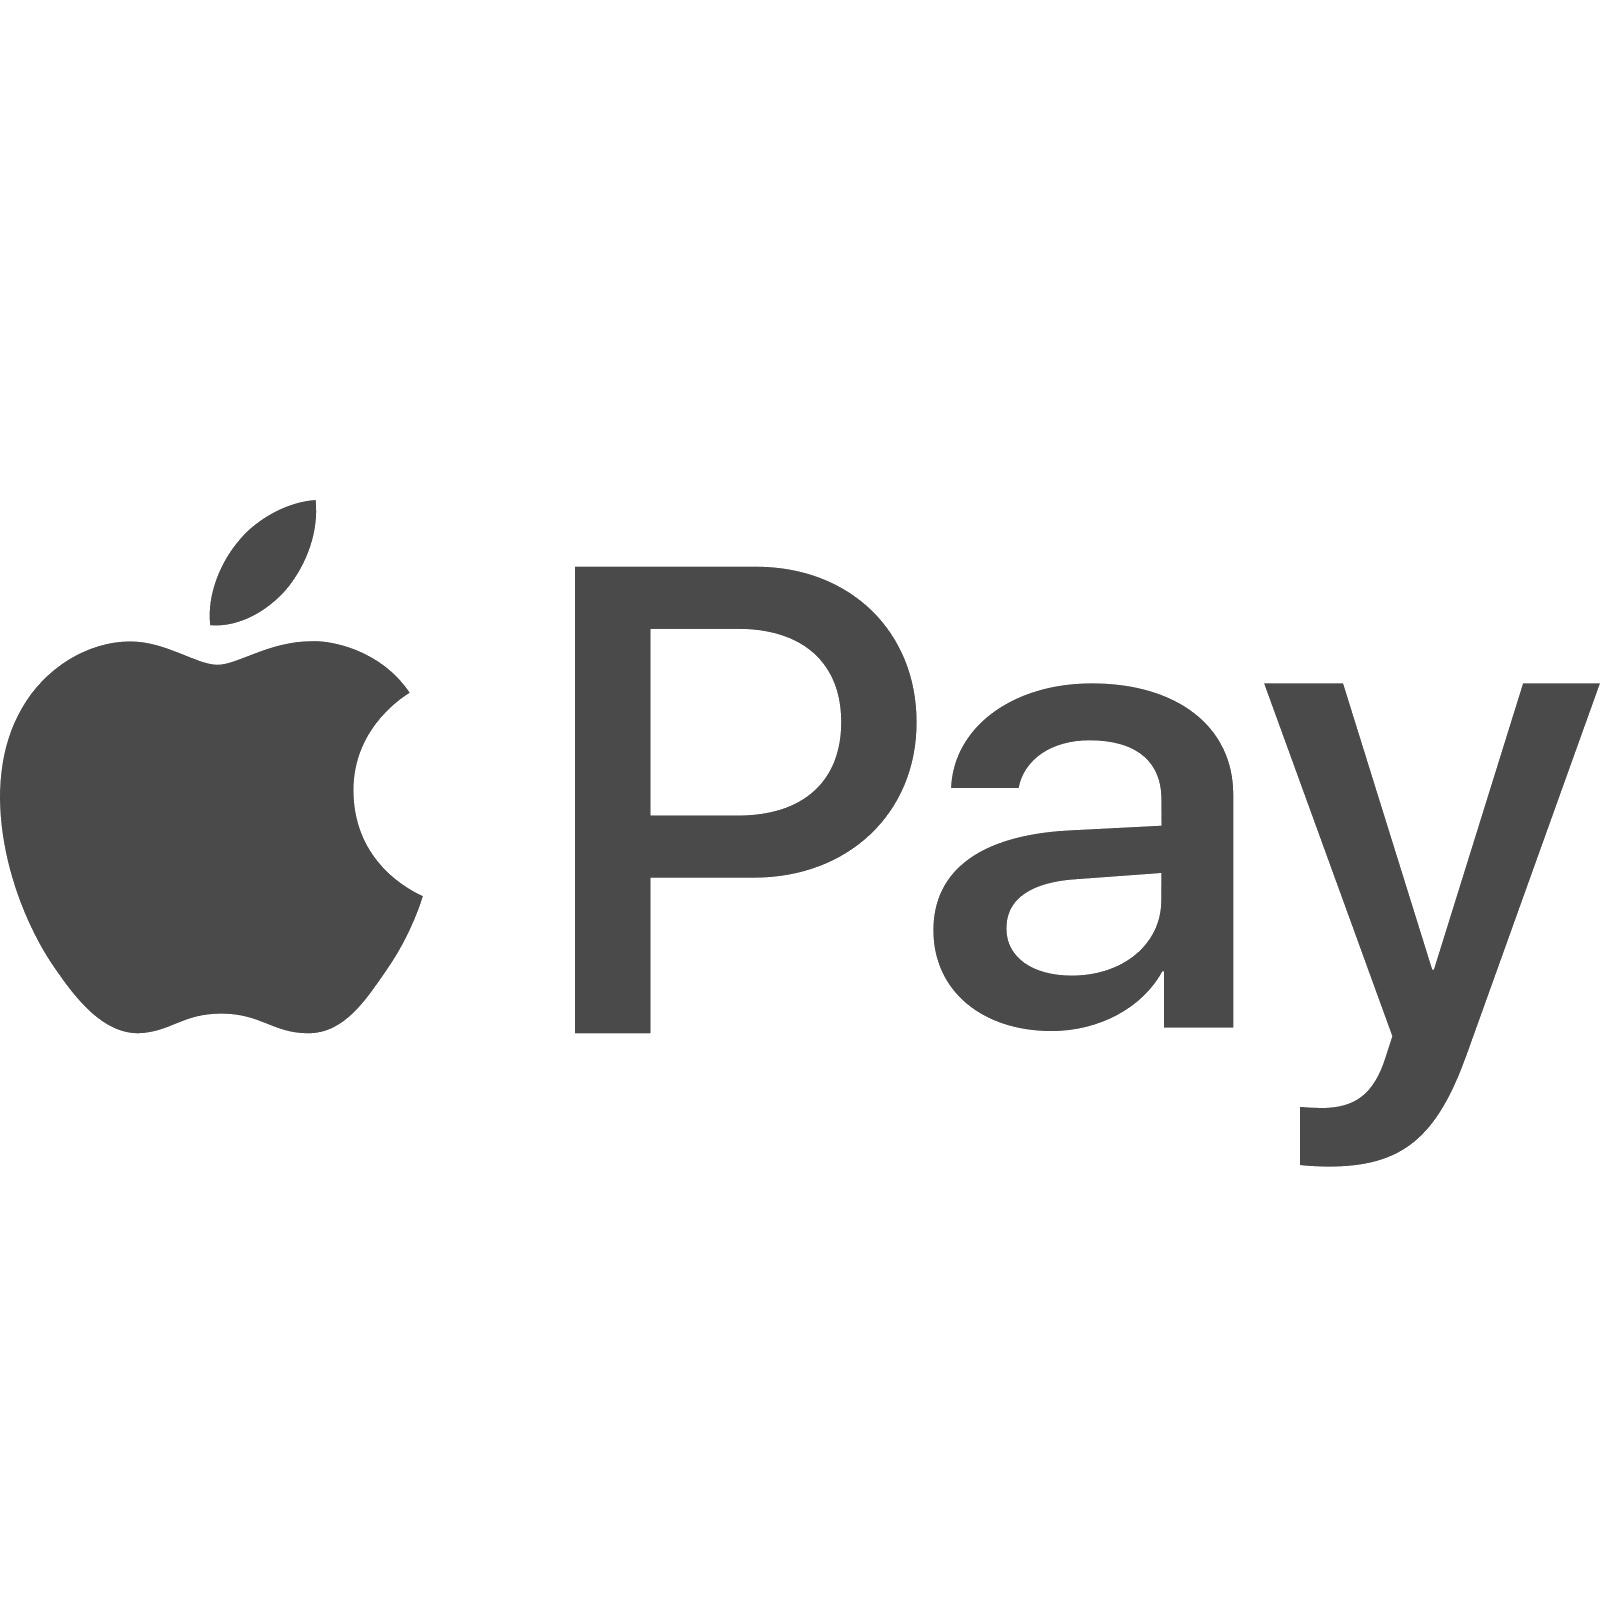 Apple wallet png. Pay icon free download